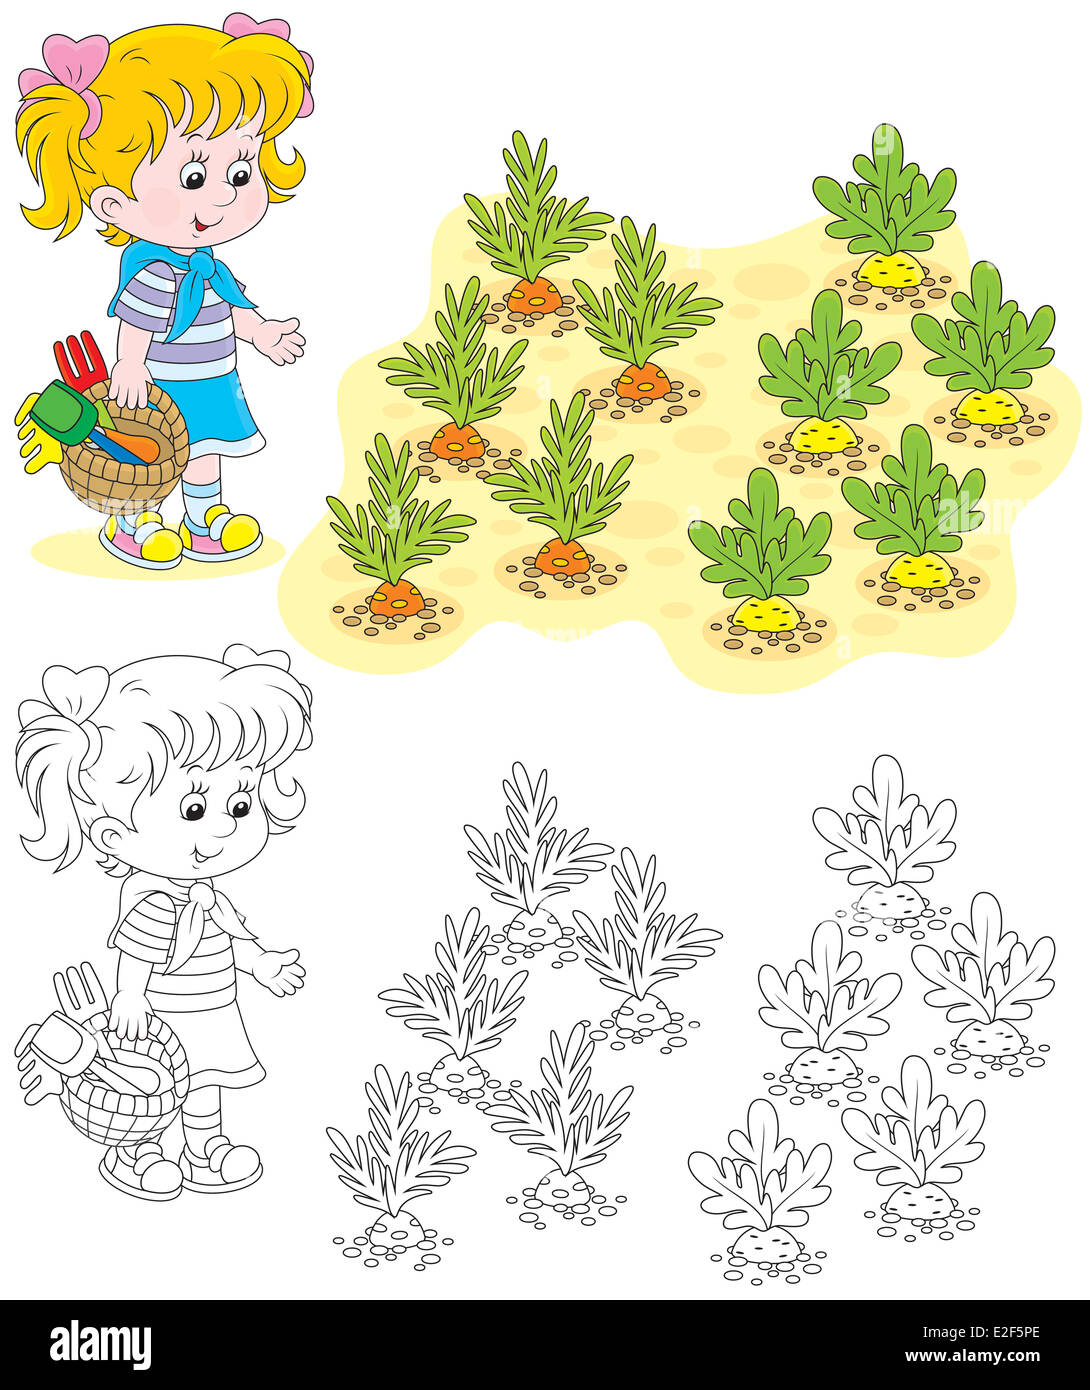 Child Drawing Kitchen Garden With Vegetables Stock Photos & Child ...